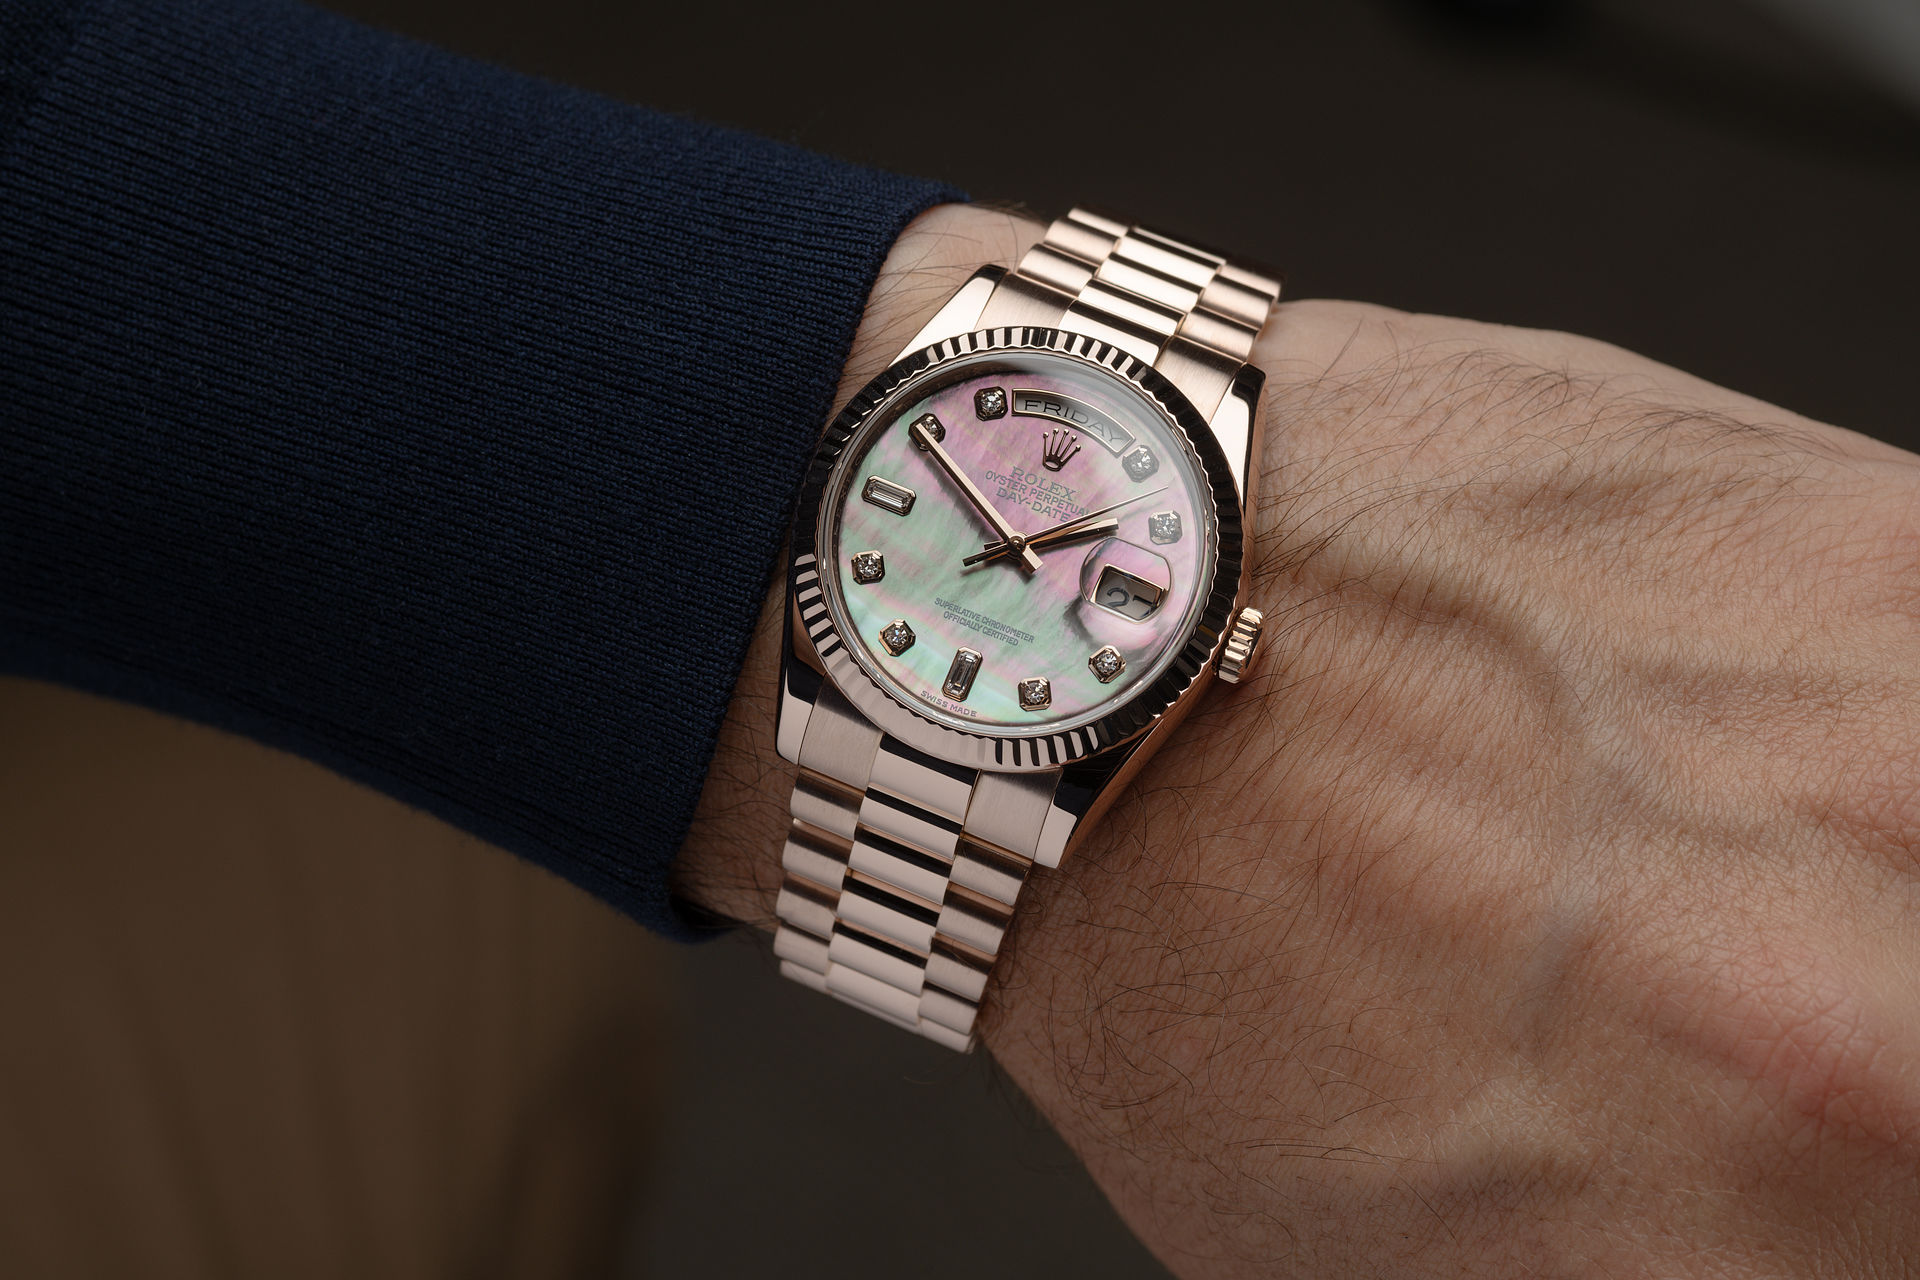 ref 118235 | Mother of Pearl Diamond Dial | Rolex Day-Date